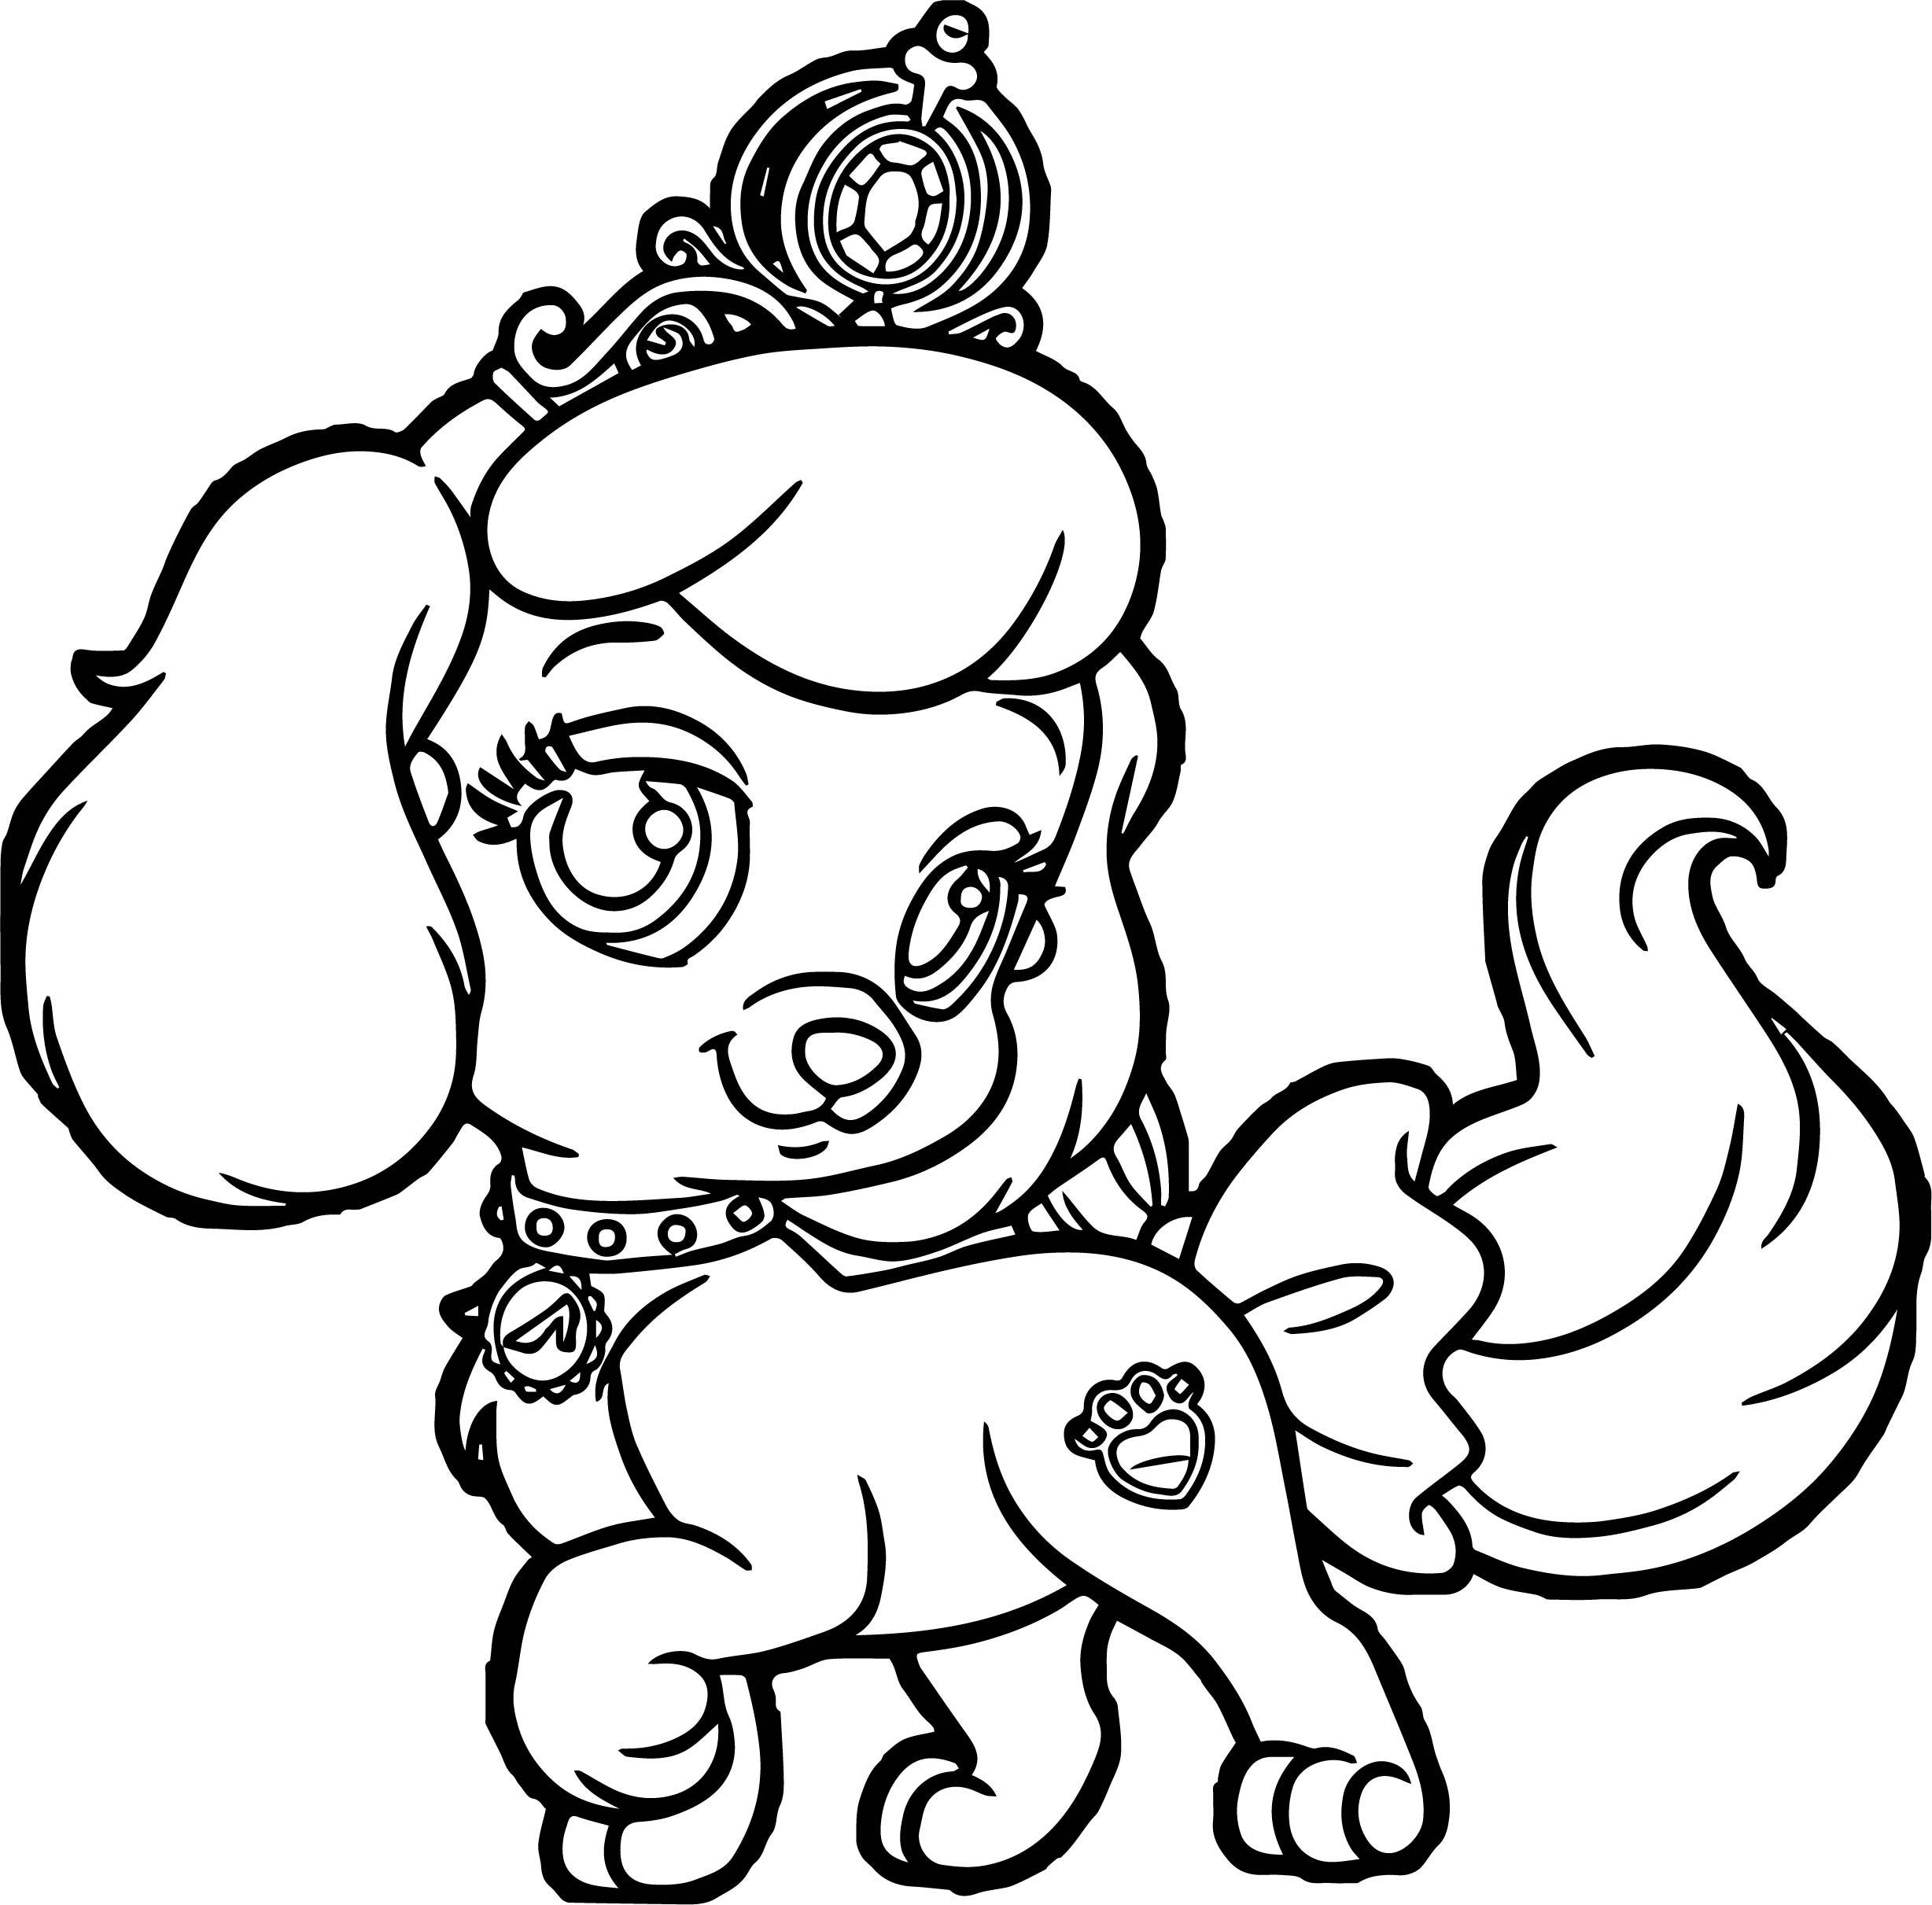 printable cute puppy coloring pages cute dog animal coloring pages books for print cute printable pages coloring puppy